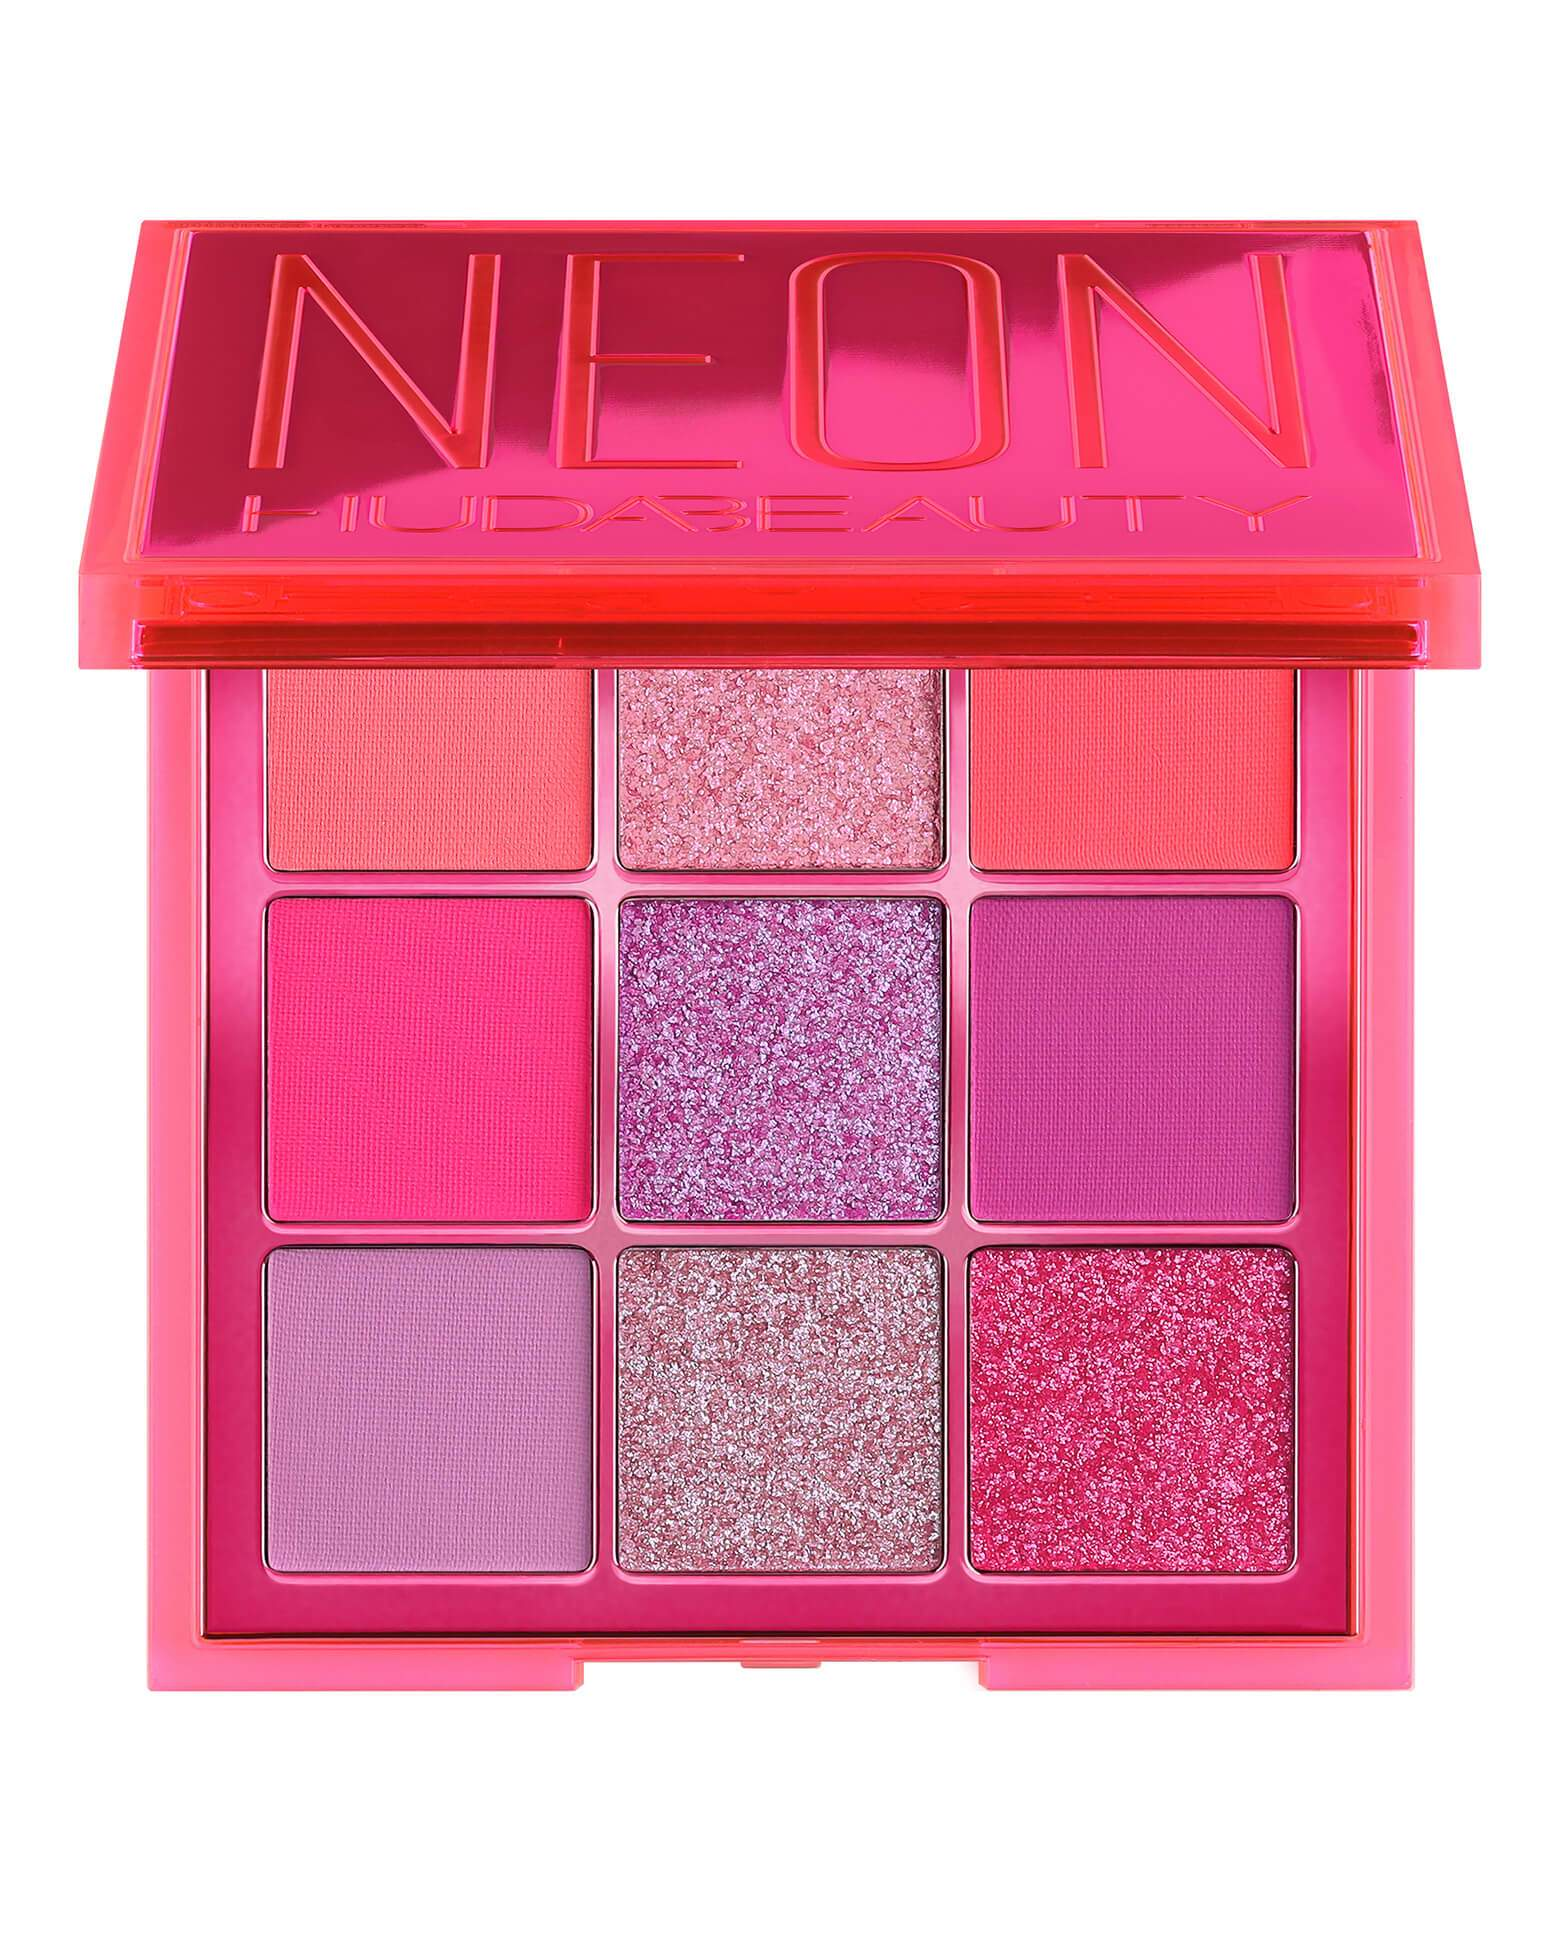 Neon Pink Obsessions HUDA BEAUTY